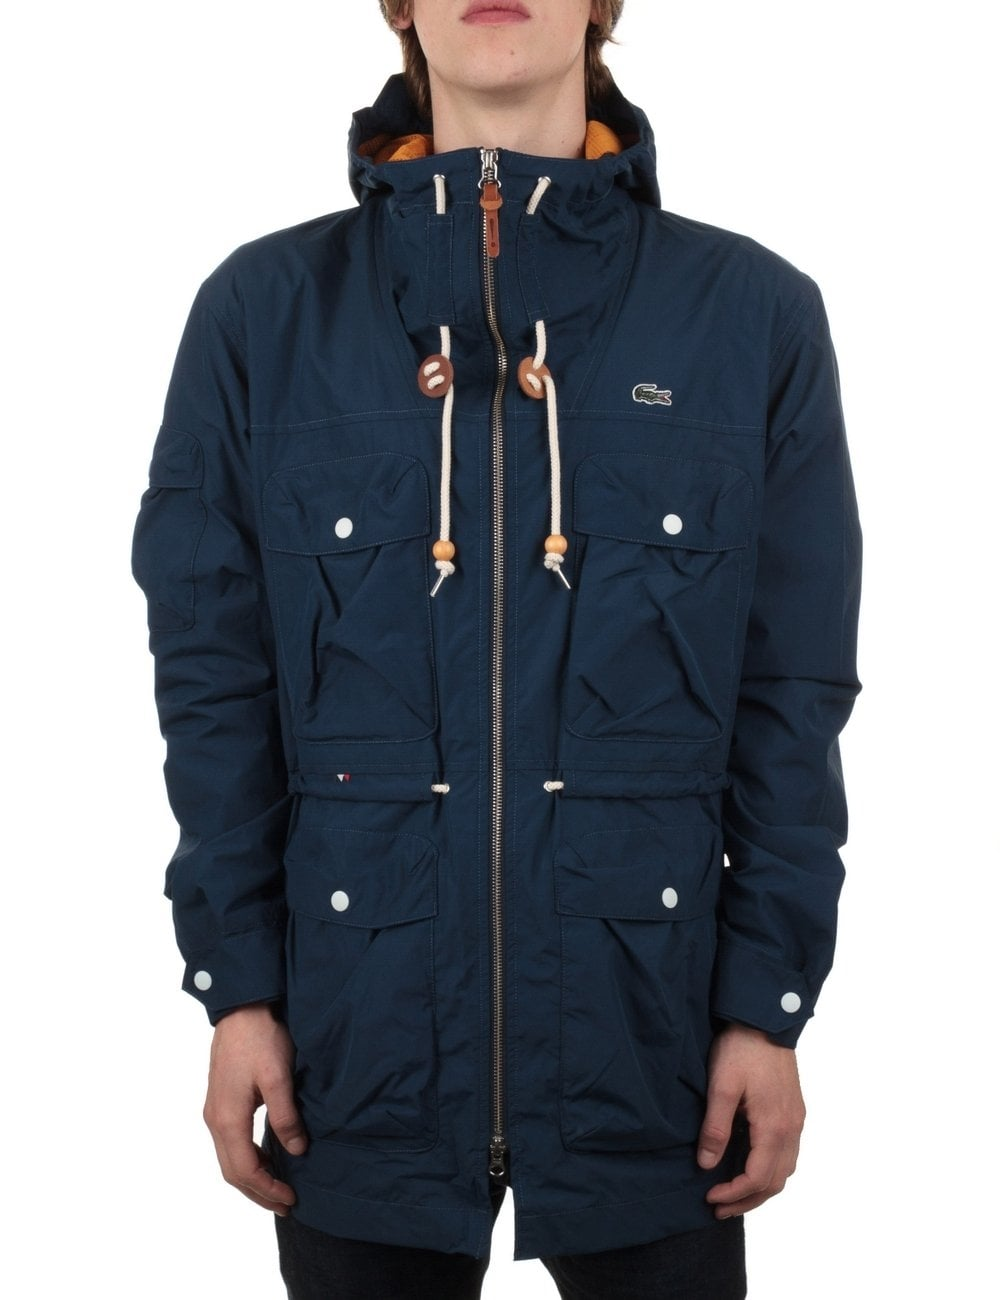 79c6c902c9 Lacoste Live Hooded Jacket - Ship Blue - Clothing from Fat Buddha ...